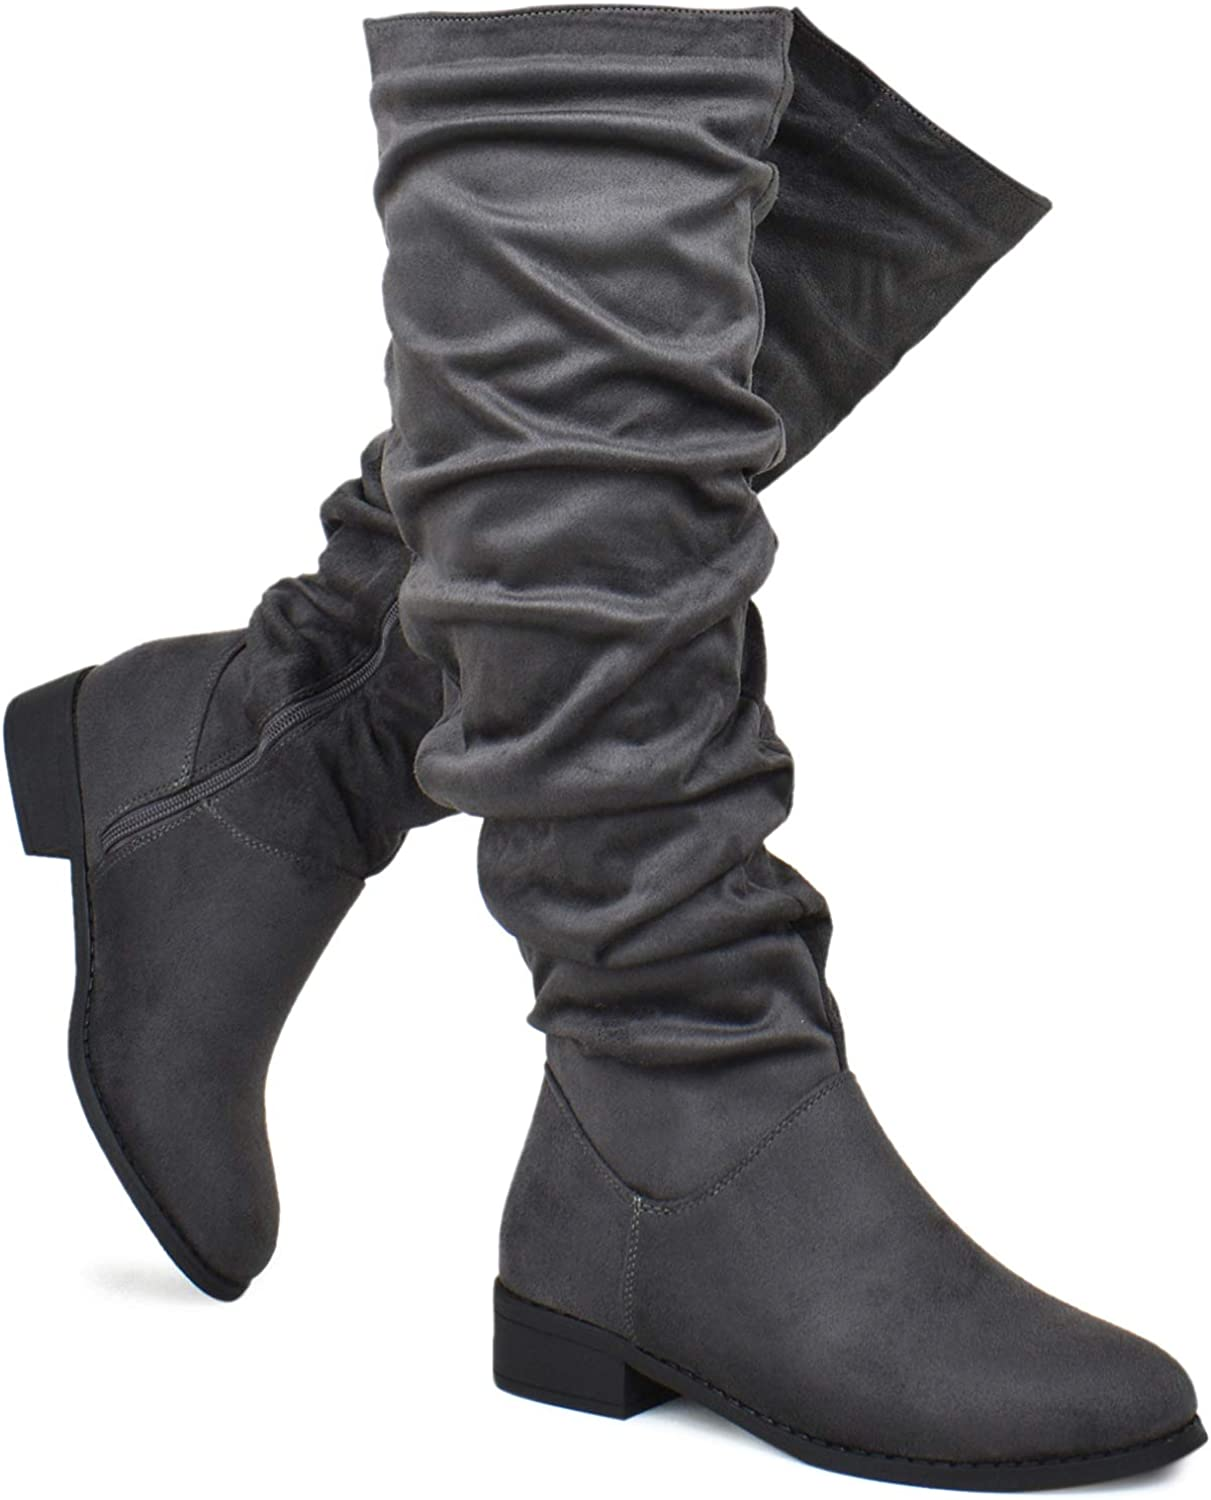 Premier Standard - Women's Fashion Comfy Suede Block Heel - Thigh High Over The Knee Boots